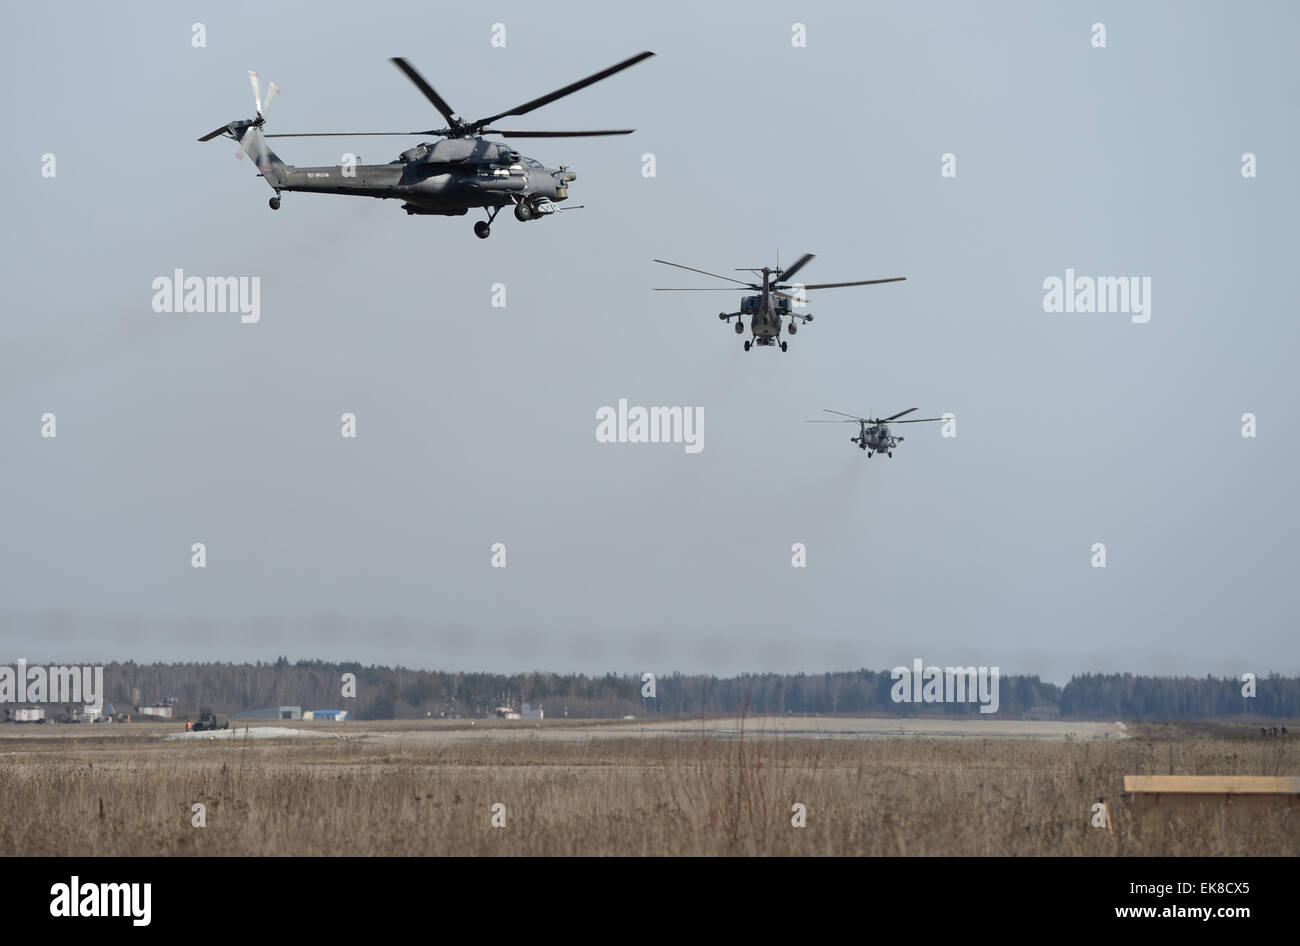 Kubinka military airfield in the Moscow region: how to get there 83